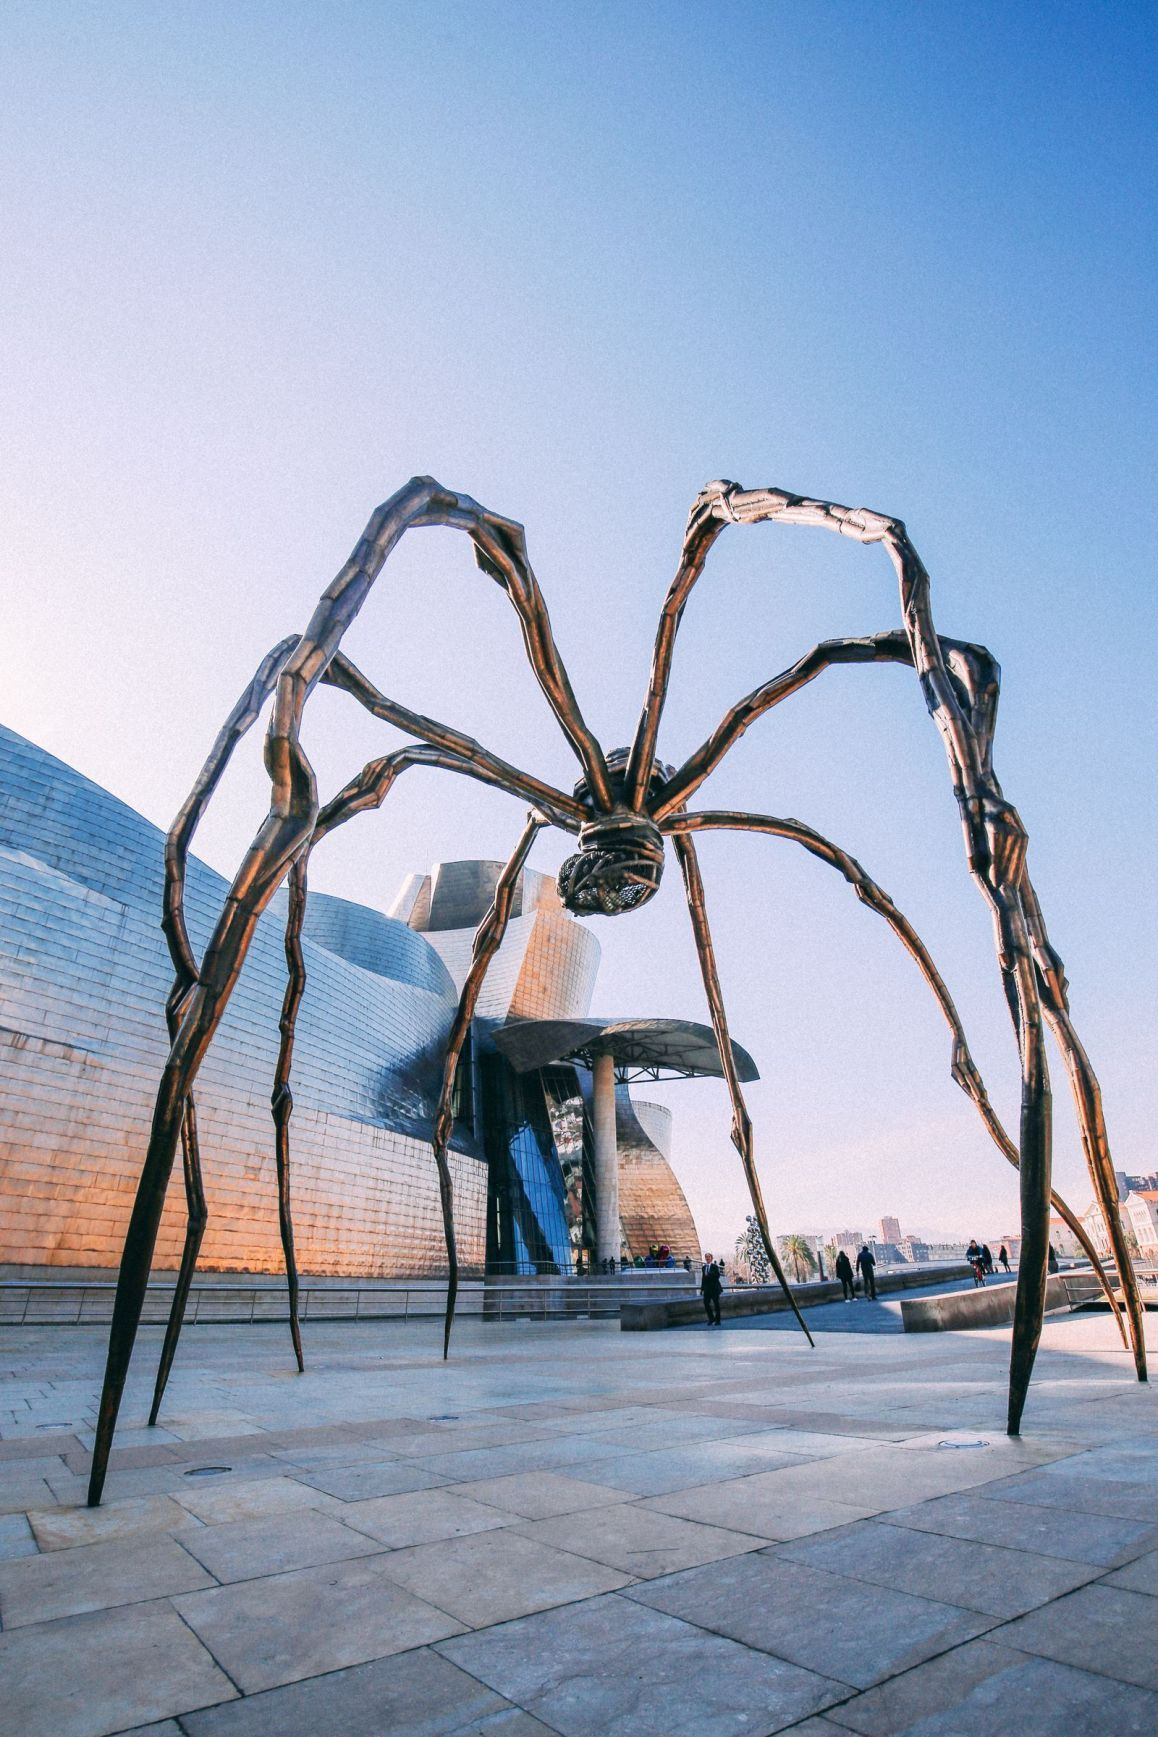 12 Best Things To Do In Bilbao, Spain